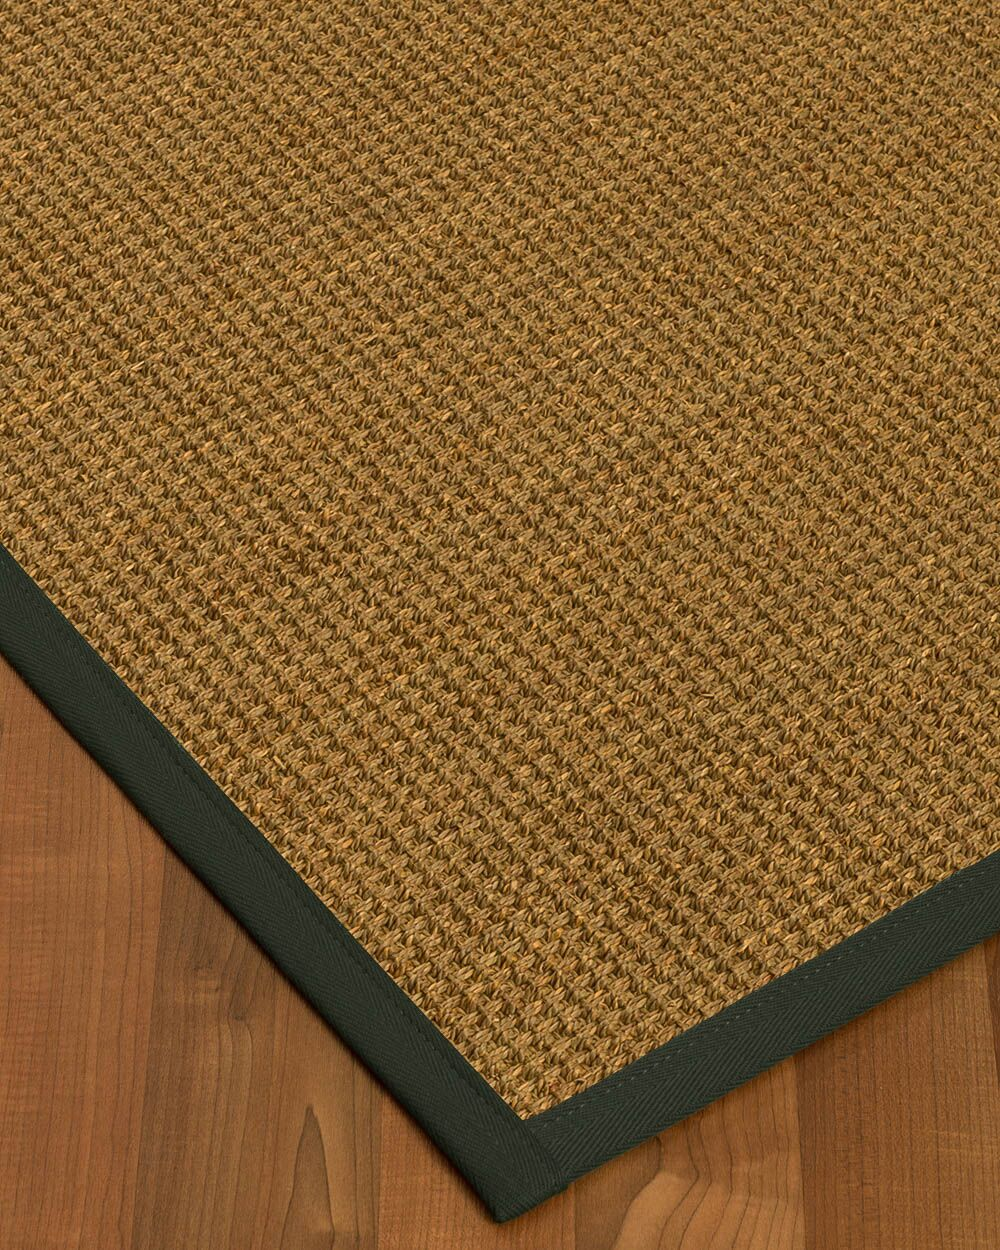 Chavez Border Hand-Woven Beige/Metal Area Rug Rug Pad Included: No, Rug Size: Rectangle 3' x 5'